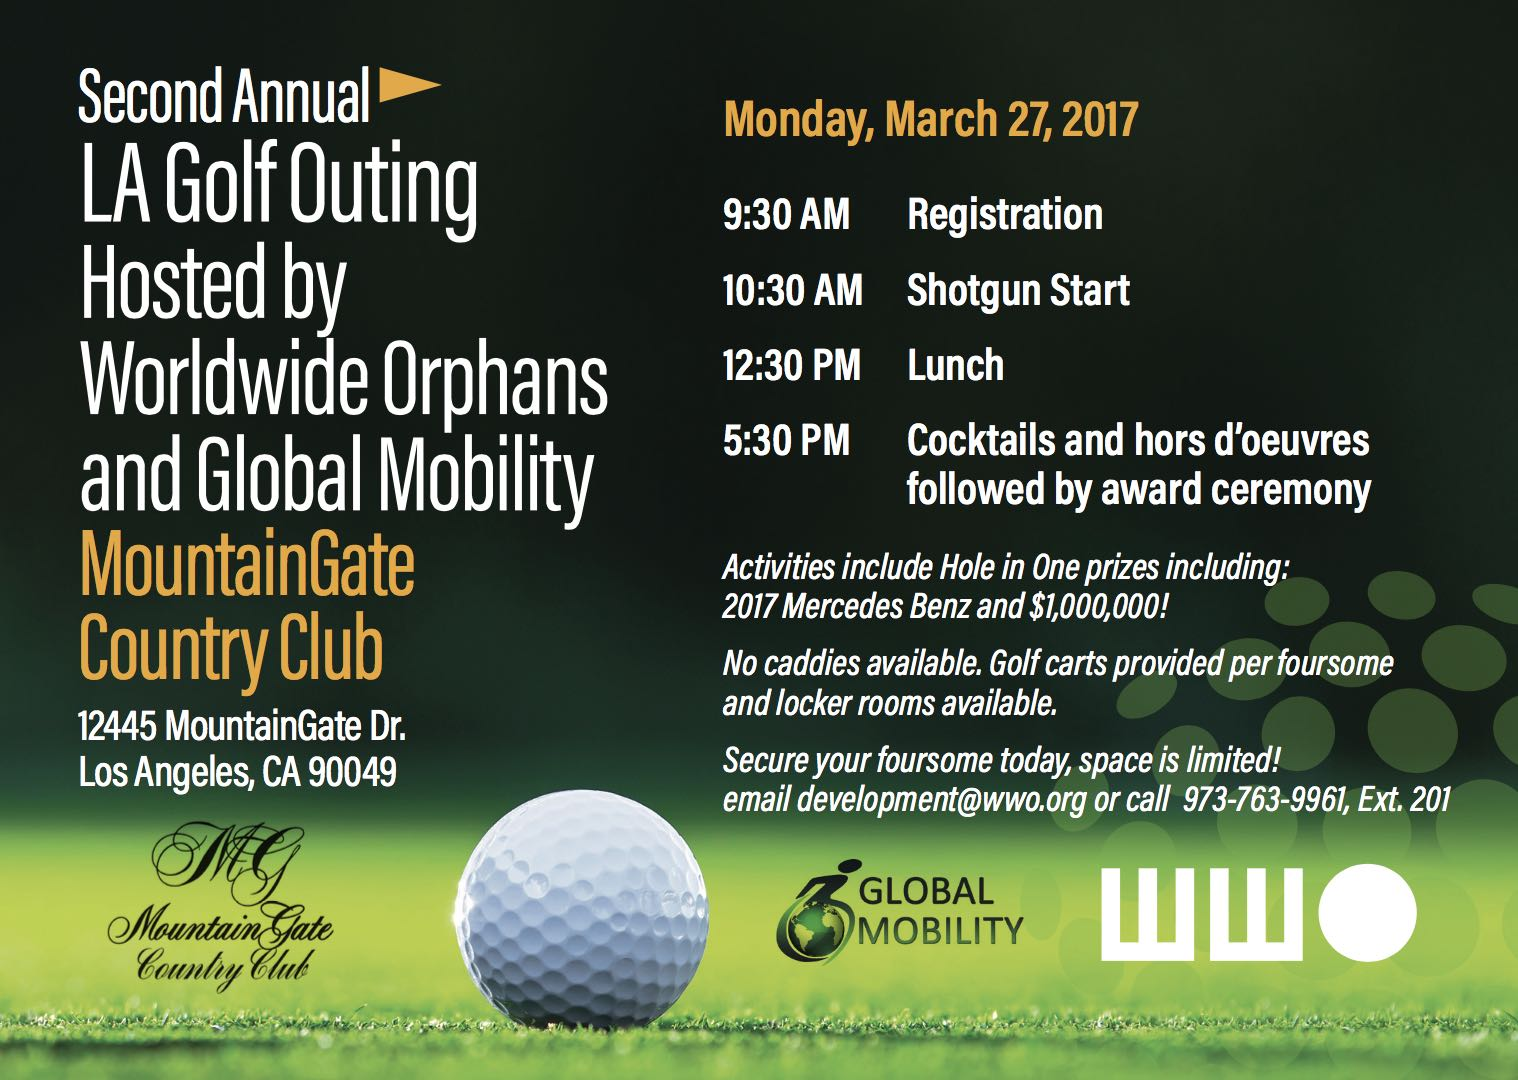 Second Annual LA Golf Outing Hosted by Worldwide Orphans and Global Mobility